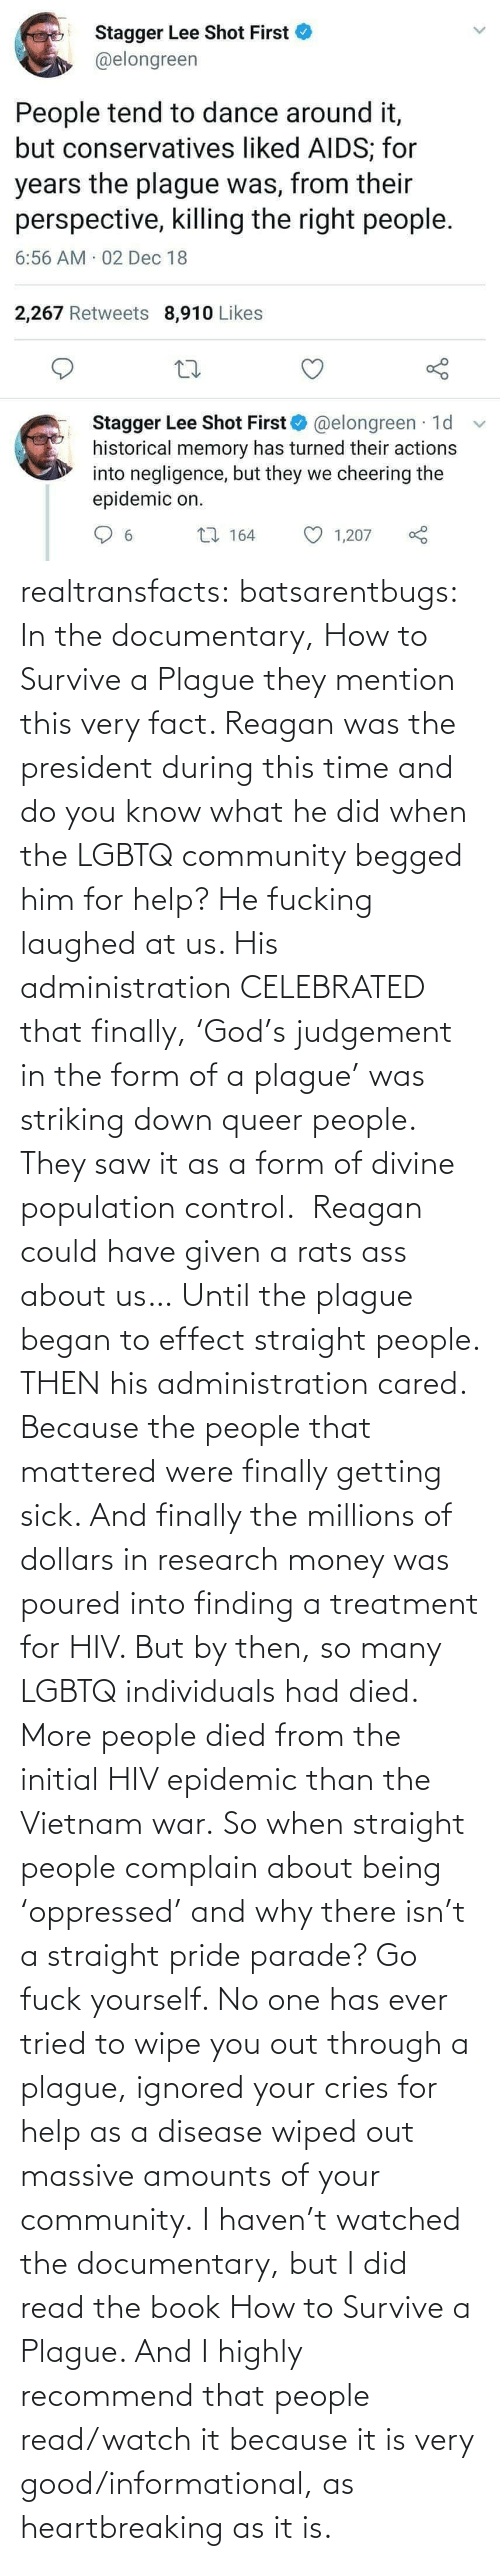 Millions: Stagger Lee Shot First  @elongreen  People tend to dance around it,  but conservatives liked AIDS; for  years the plague was, from their  perspective, killing the right people.  6:56 AM 02 Dec 18  2,267 Retweets 8,910 Likes  Stagger Lee Shot First O @elongreen · 1d  historical memory has turned their actions  into negligence, but they we cheering the  epidemic on.  27 164  1,207  6. realtransfacts:  batsarentbugs:  In the documentary, How to Survive a Plague they mention this very fact. Reagan was the president during this time and do you know what he did when the LGBTQ community begged him for help? He fucking laughed at us. His administration CELEBRATED that finally, 'God's judgement in the form of a plague' was striking down queer people.  They saw it as a form of divine population control.  Reagan could have given a rats ass about us… Until the plague began to effect straight people. THEN his administration cared. Because the people that mattered were finally getting sick. And finally the millions of dollars in research money was poured into finding a treatment for HIV. But by then, so many LGBTQ individuals had died.  More people died from the initial HIV epidemic than the Vietnam war. So when straight people complain about being 'oppressed' and why there isn't a straight pride parade? Go fuck yourself. No one has ever tried to wipe you out through a plague, ignored your cries for help as a disease wiped out massive amounts of your community.  I haven't watched the documentary, but I did read the book  How to Survive a Plague. And I highly recommend that people read/watch it because it is very good/informational, as heartbreaking as it is.